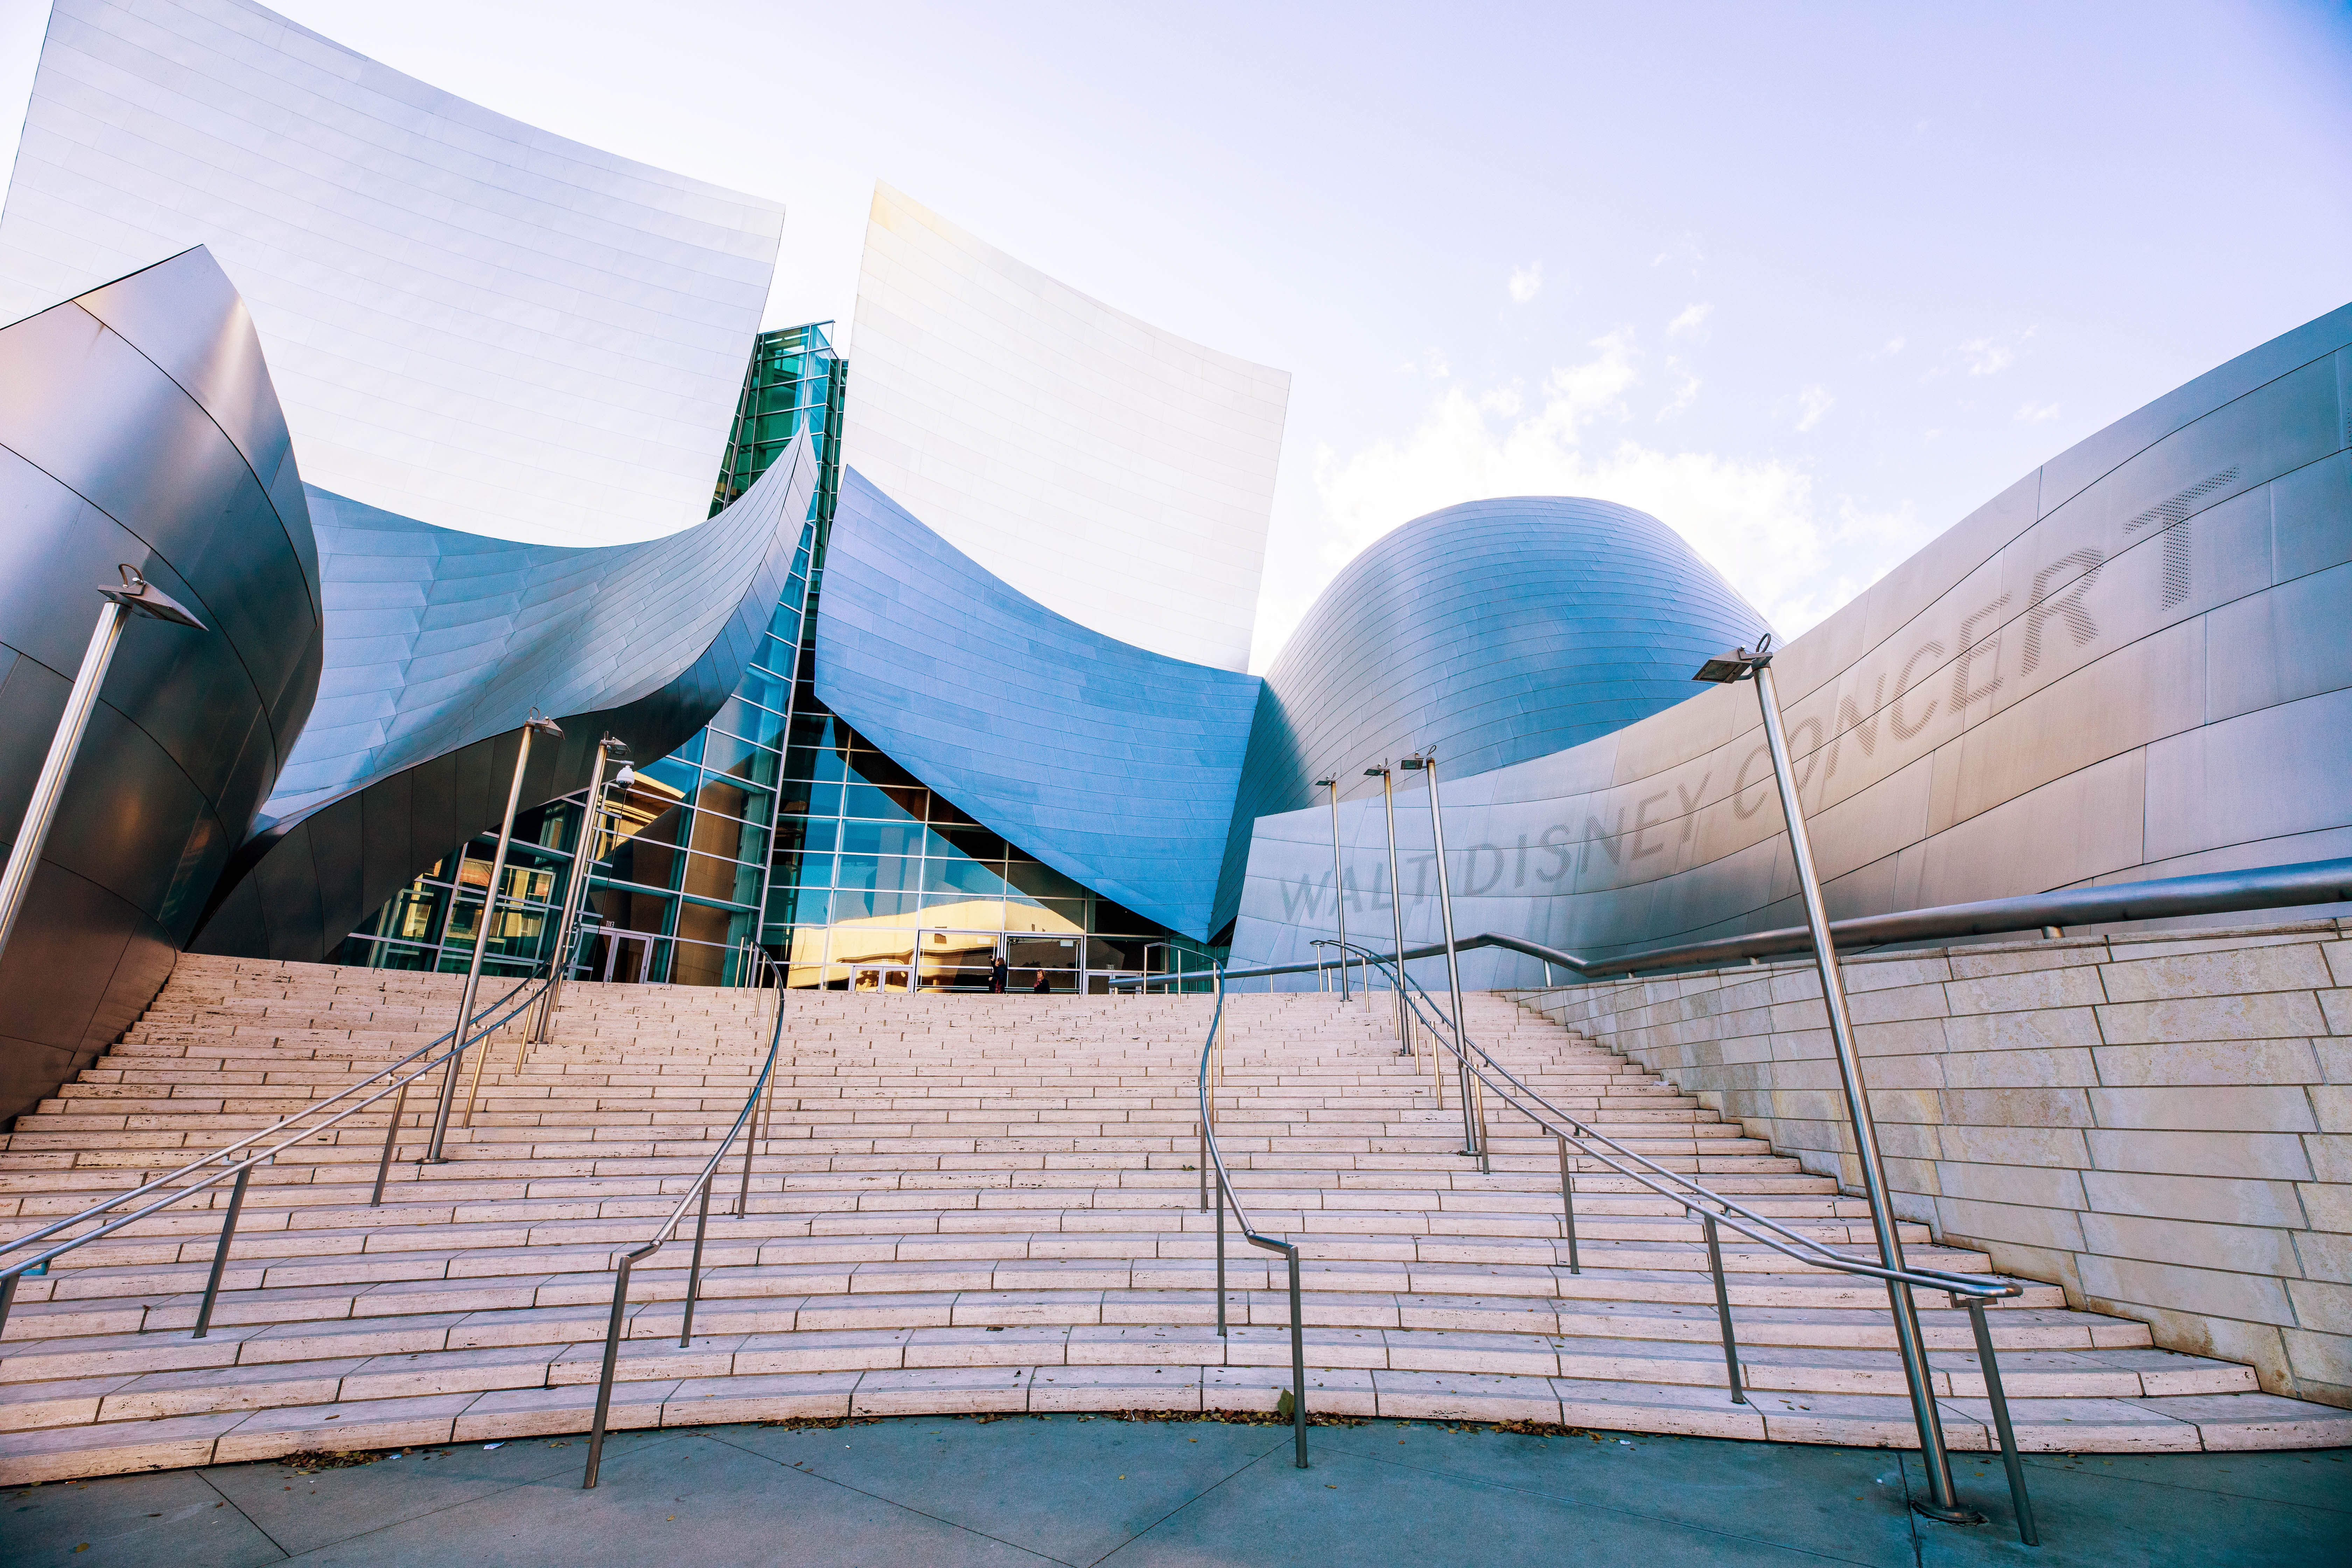 Exterior of the Disney Concert Hall